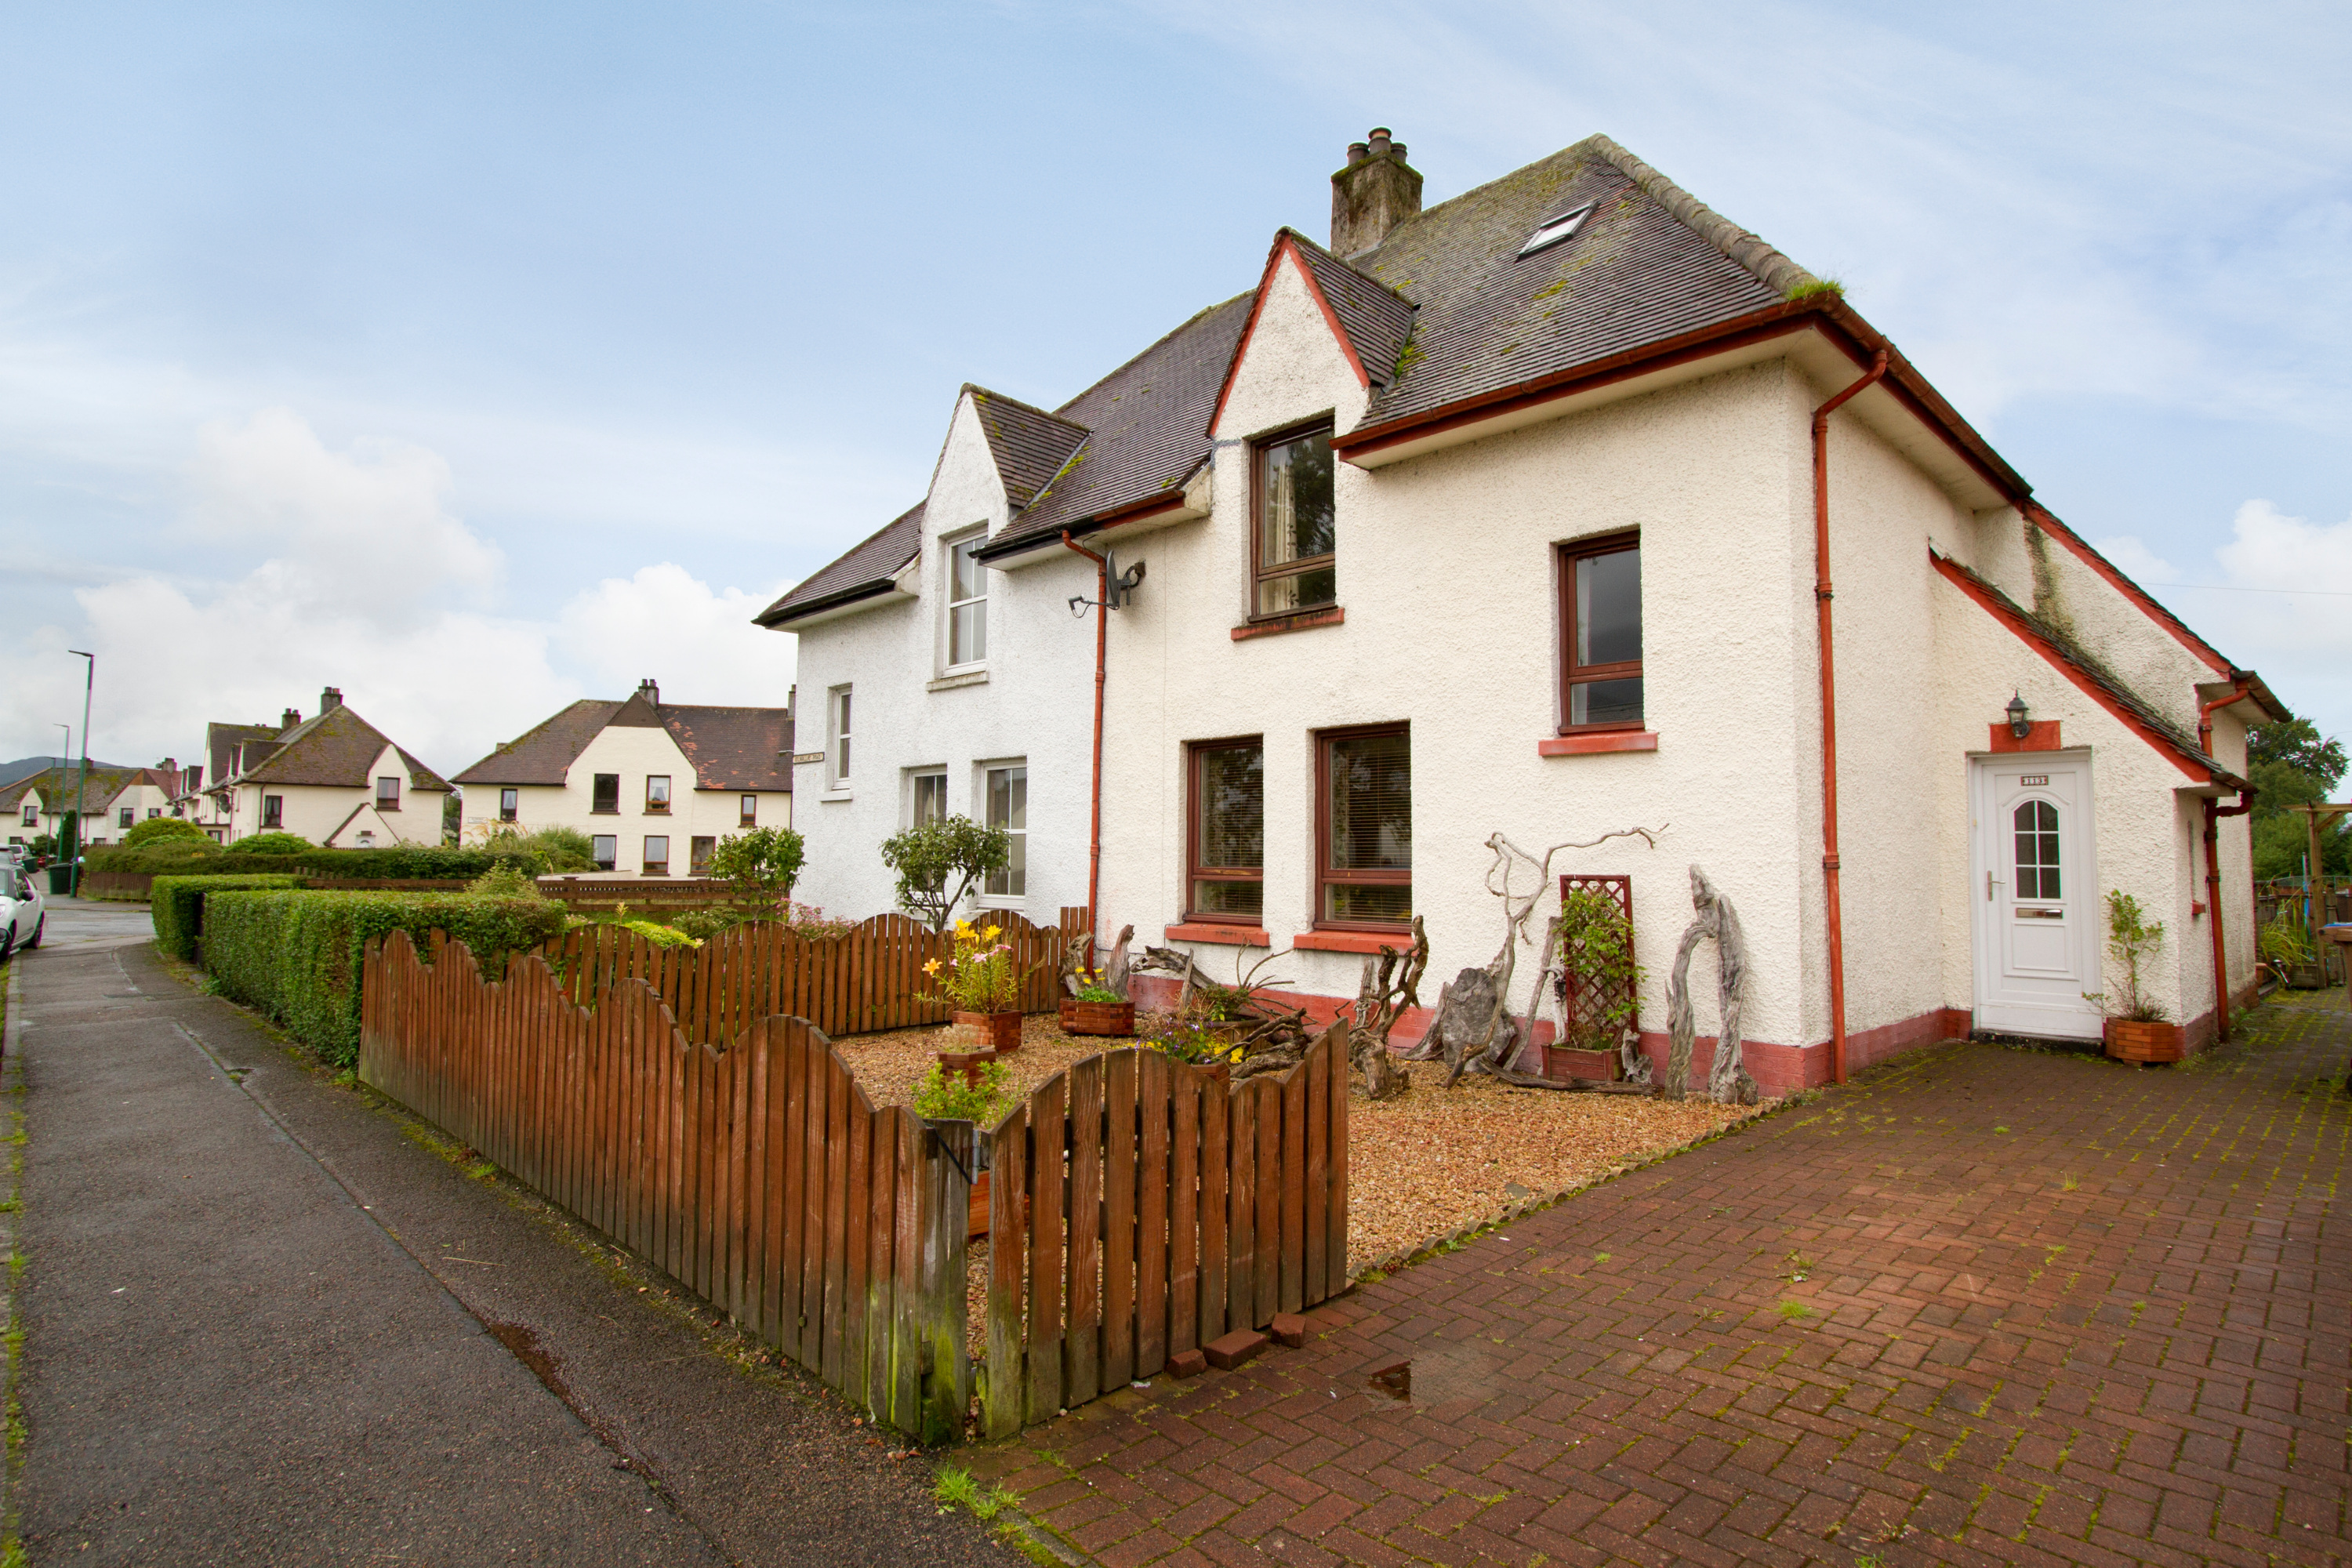 Kilmallie Road, Caol, Fort William, Inverness shire